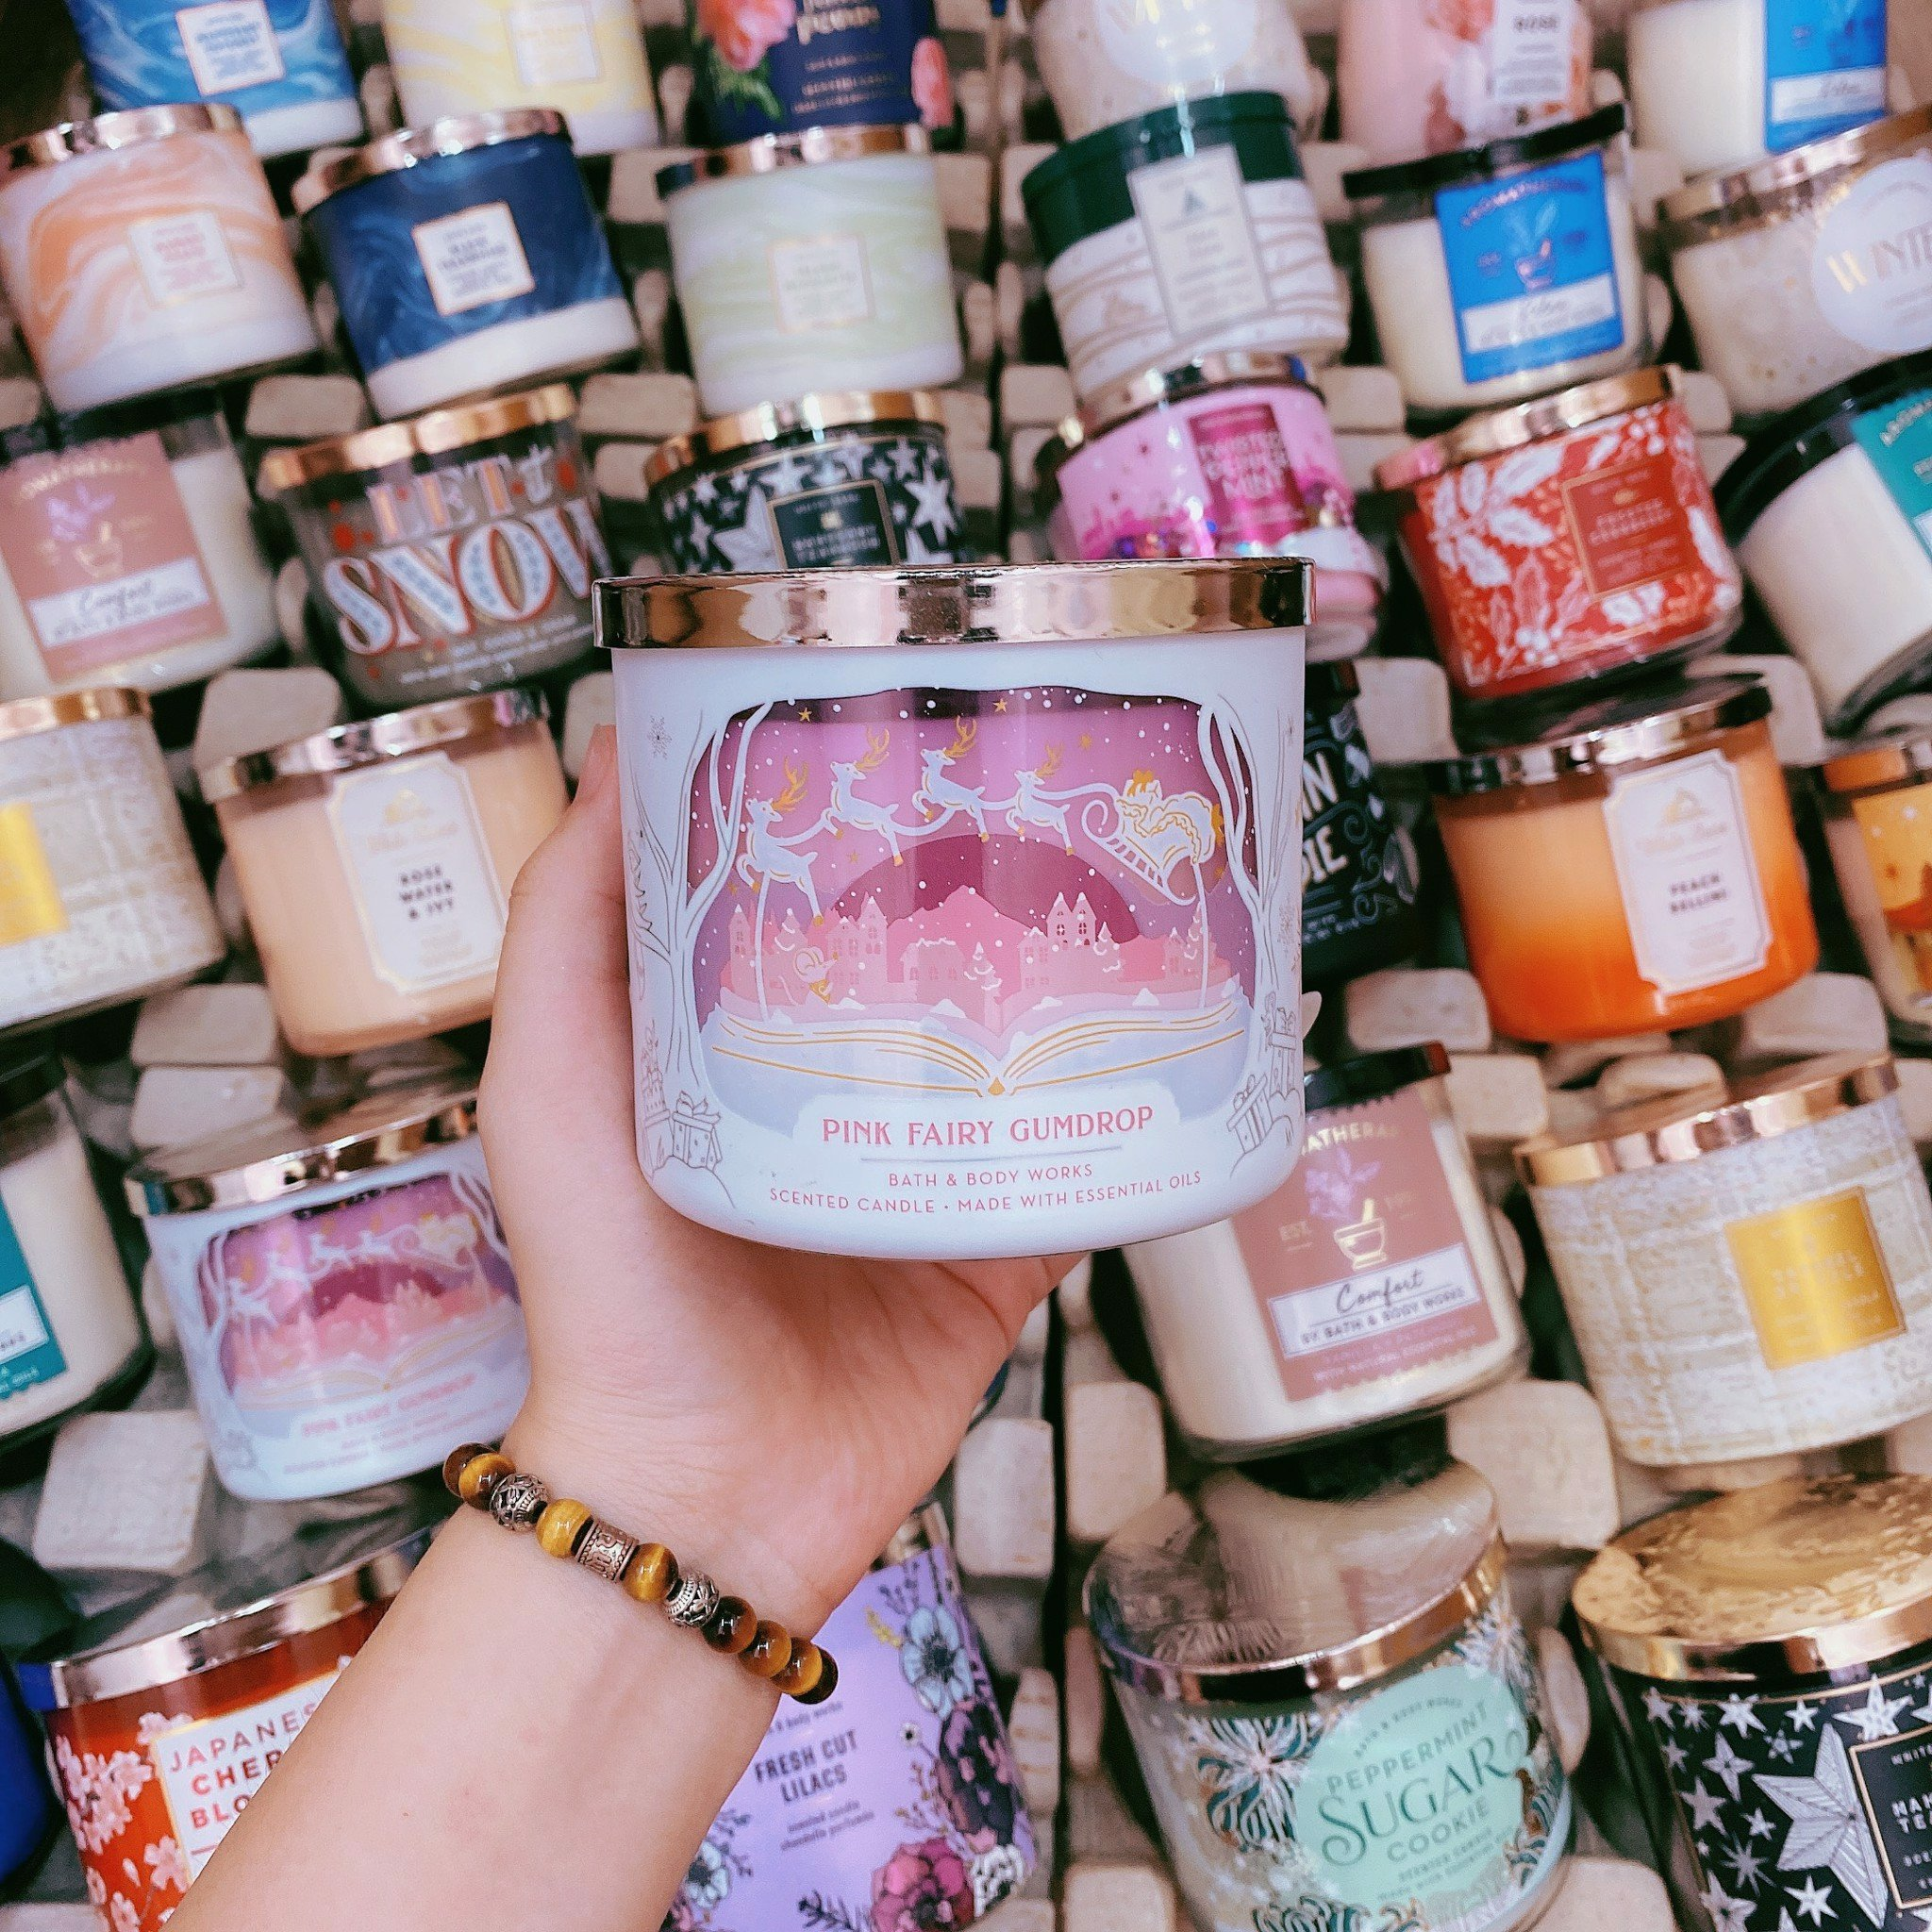 Nến Thơm 3 Bấc Bath & Body Works Pink Fairy Gumdrop Scented Candle